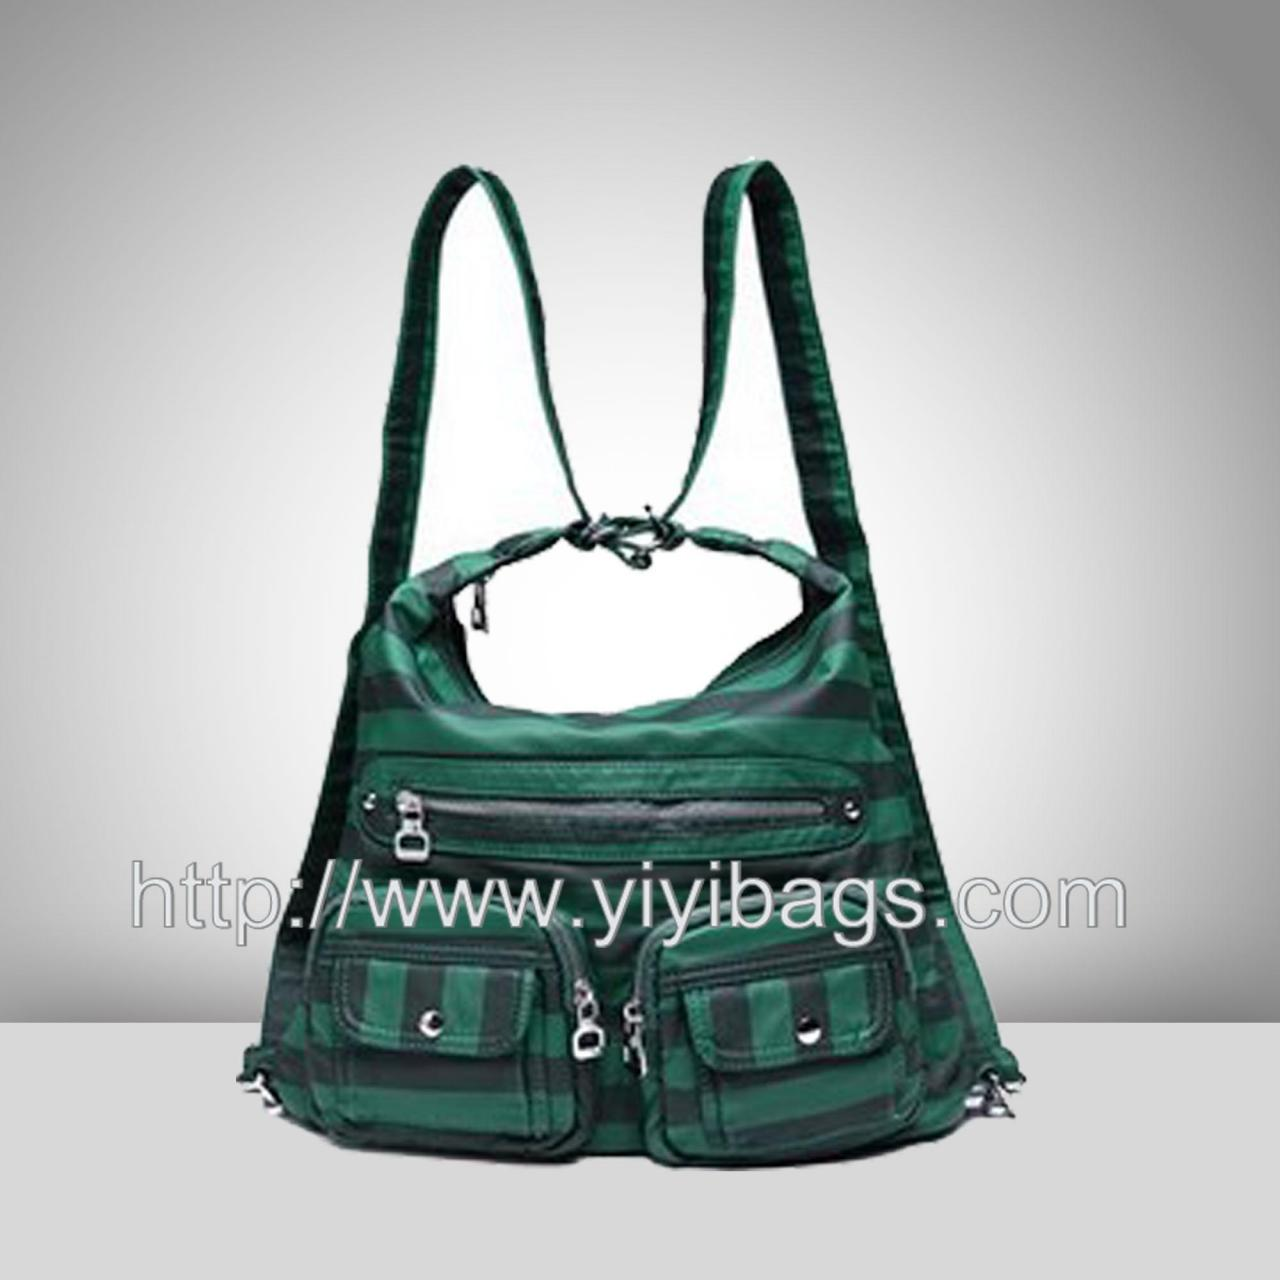 China J087-2014 bag nylon bag,zipper nylon tote hand bag wholesale